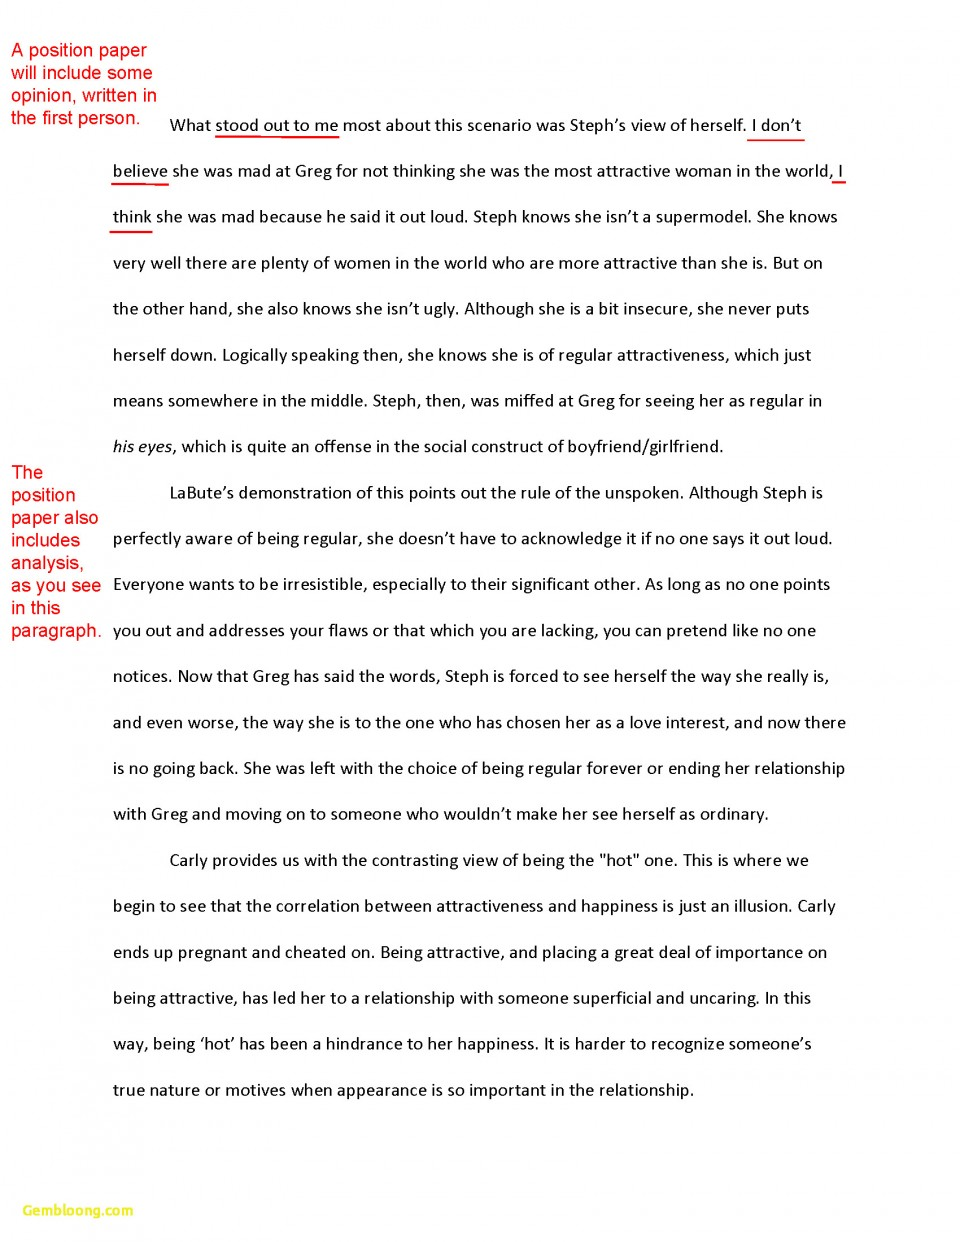 005 Apa Format Essay Example Sample New How To Write Response Paper Stupendous Citation Style Research 6th Edition Pdf 960